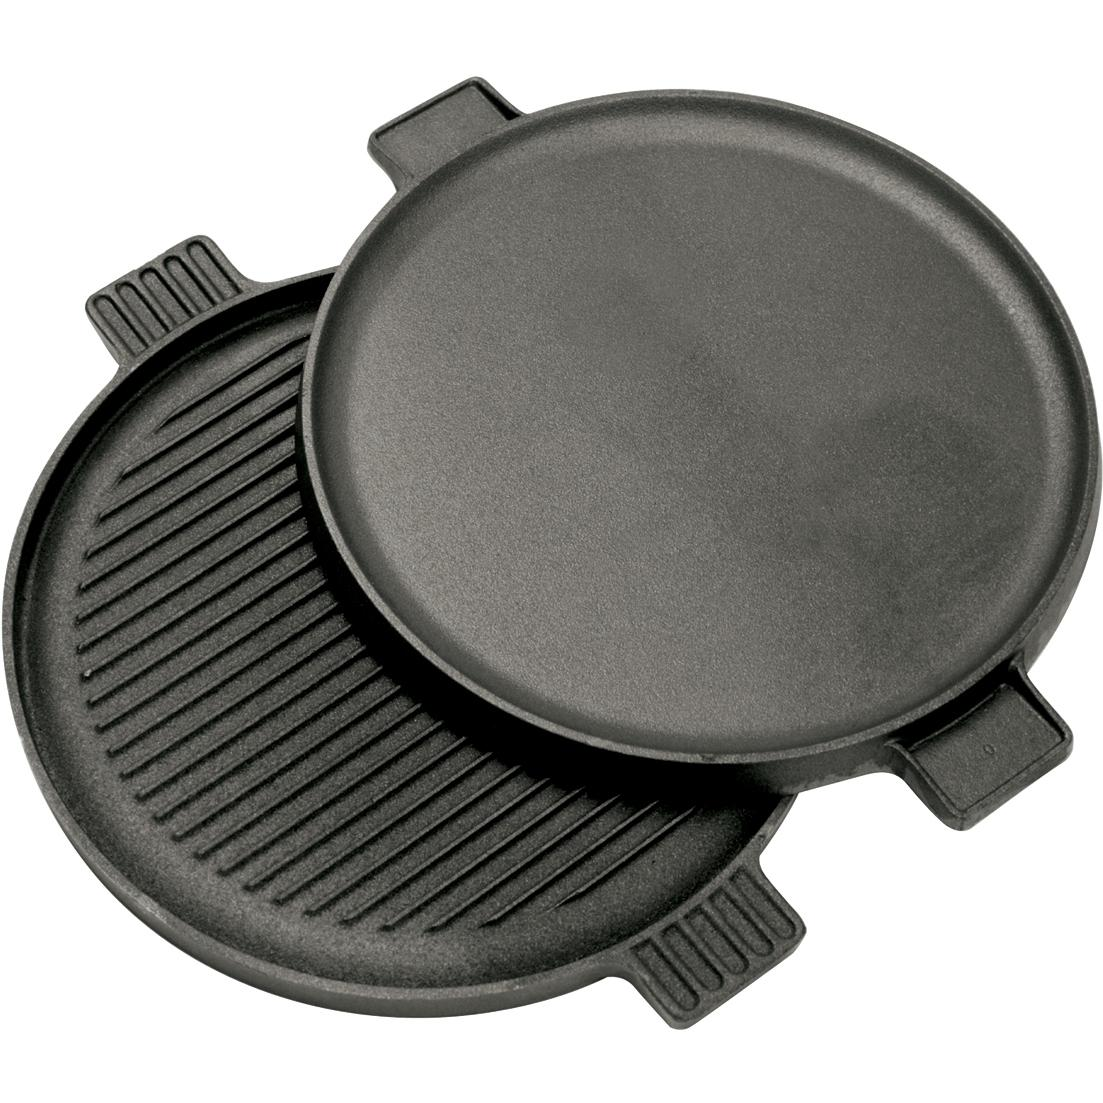 Bayou Classic Griddles 14-Inch Reversible Round Cast Iron Griddle - 7414